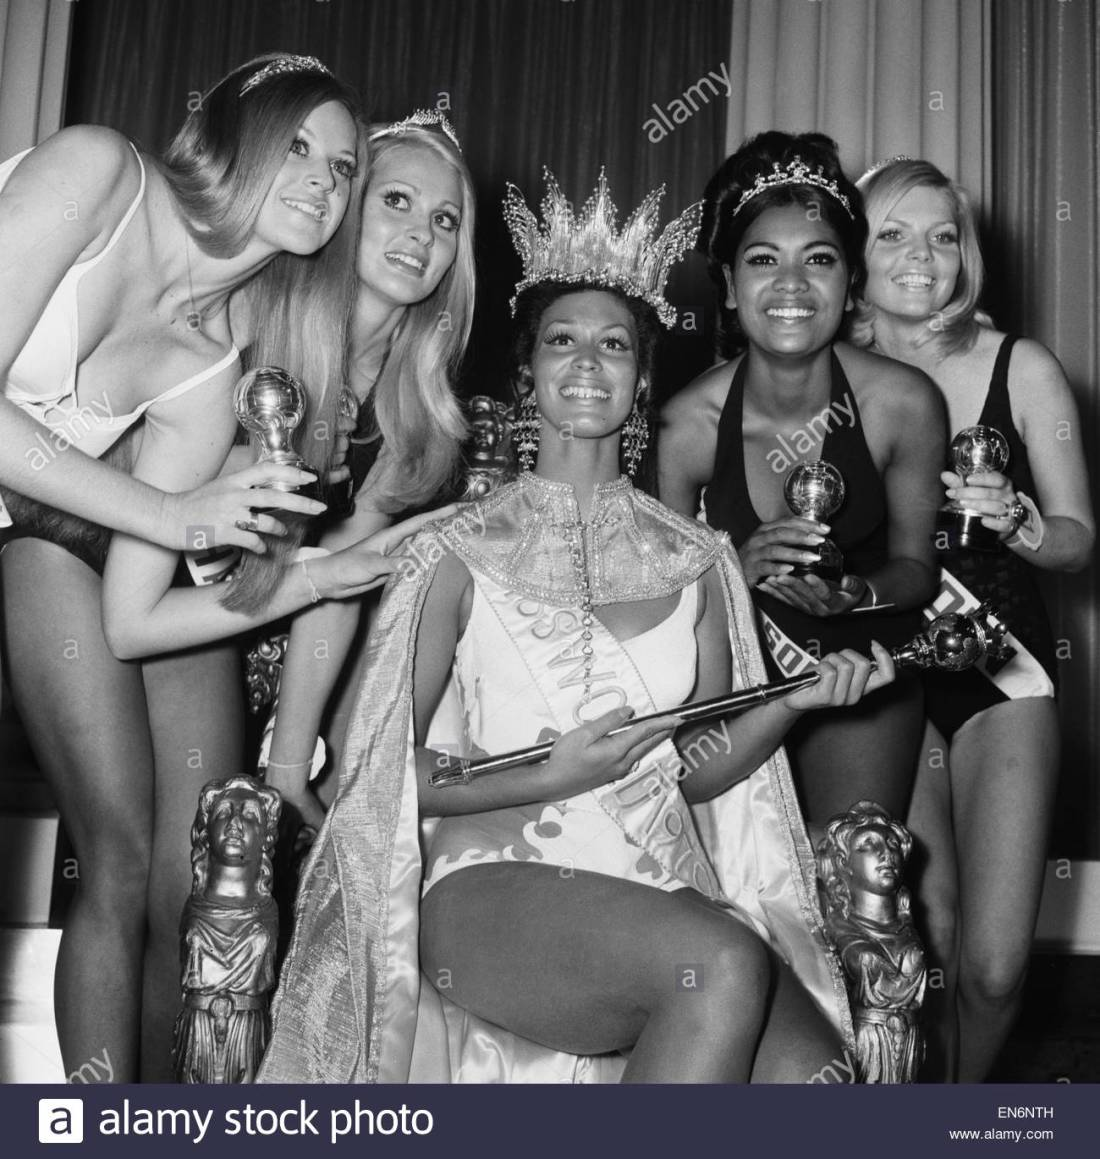 miss-world-competition-at-the-royal-albert-hall-20th-november-1970-en6nth